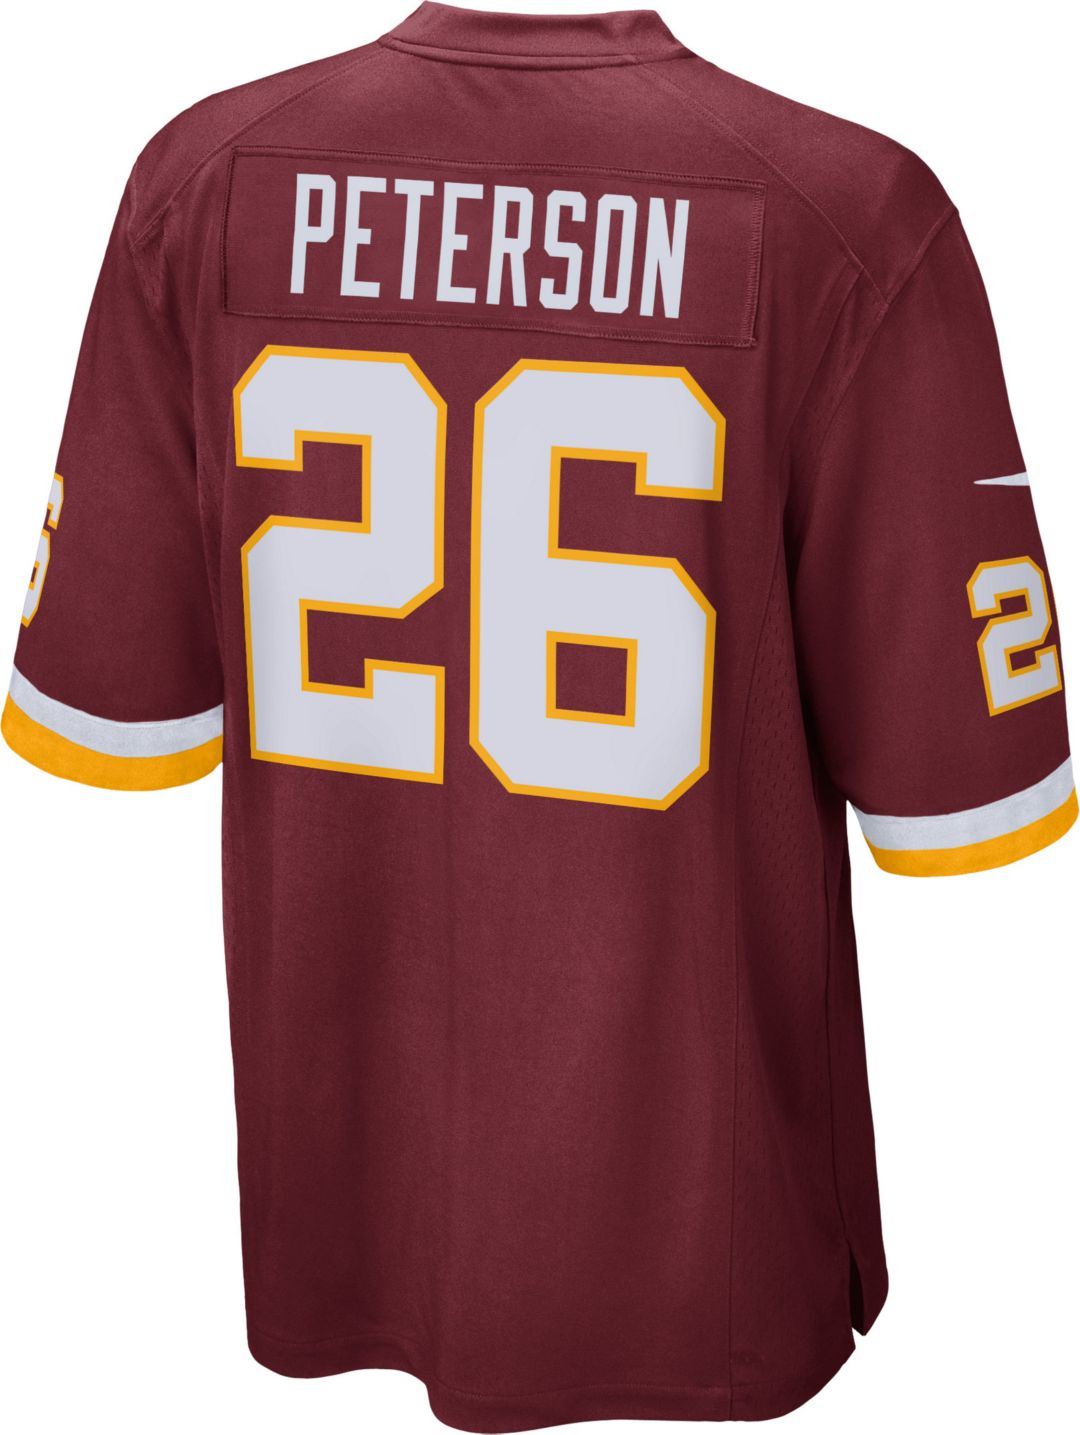 competitive price 853d6 4e661 Nike Men's Home Game Jersey Washington Redskins Adrian Peterson #26